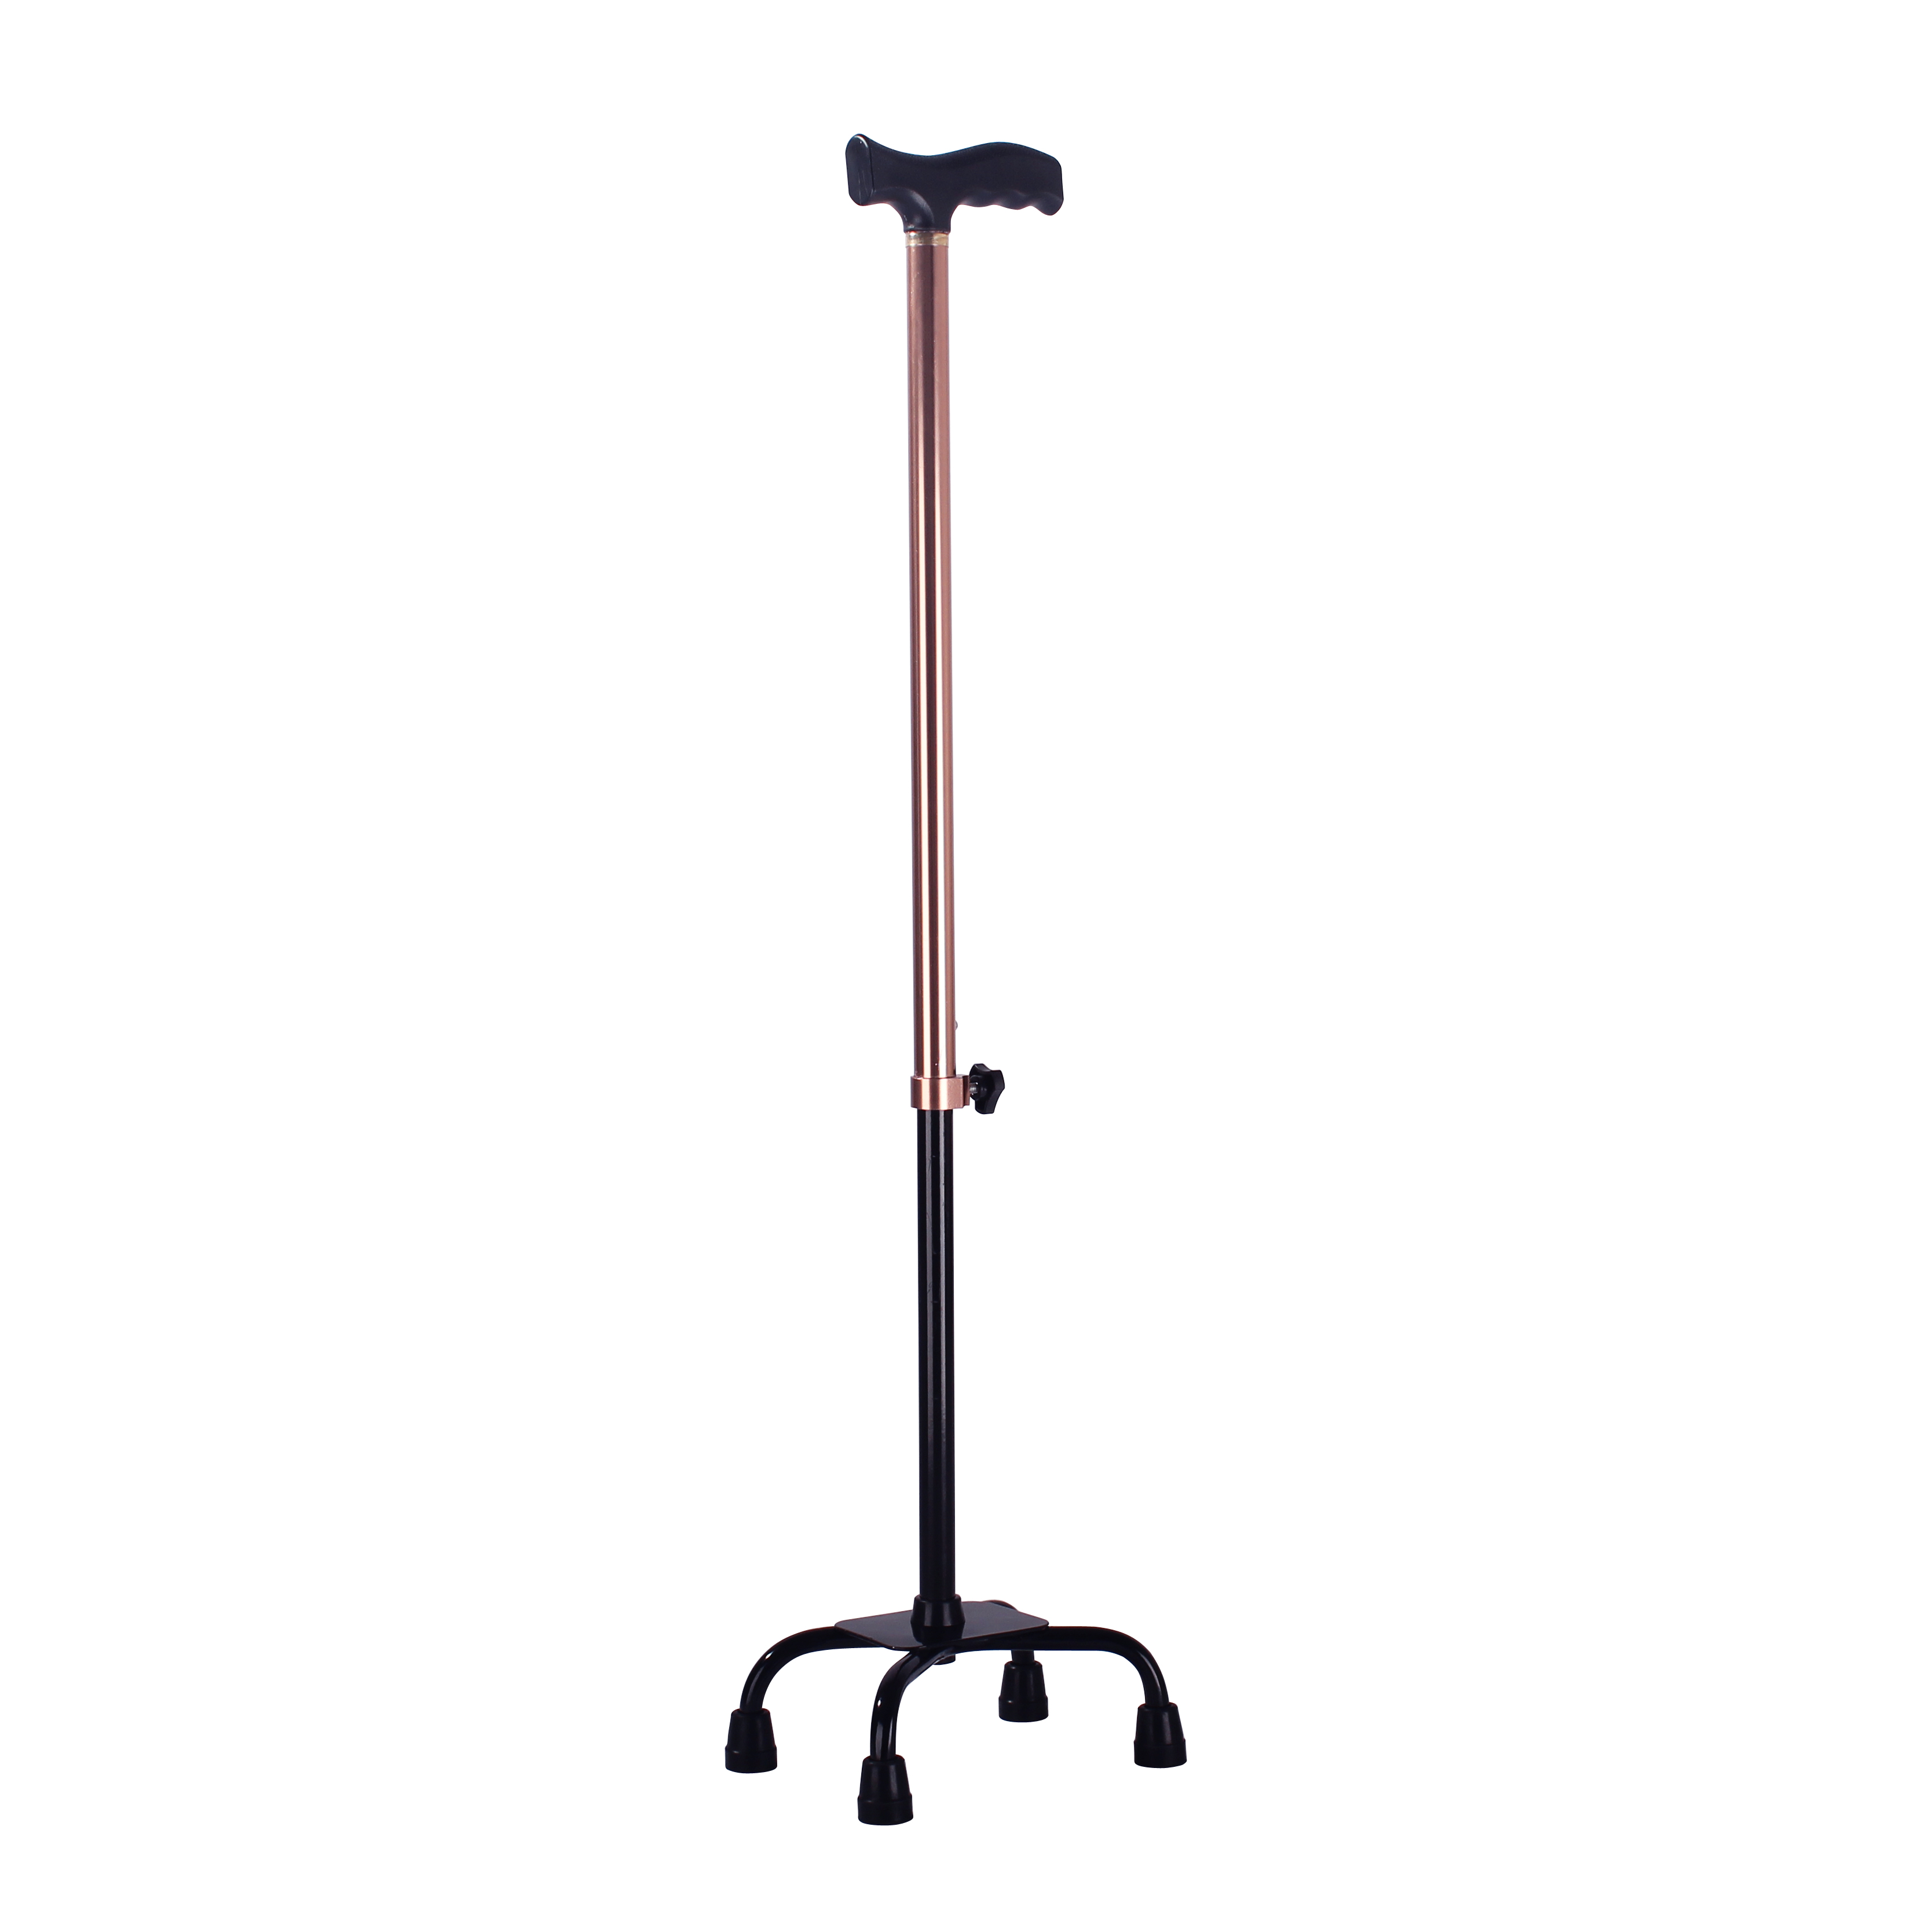 Yade corners cane crutch legs crutches old aluminum telescopic walking stick elderly walker height adjustable 1 fsd